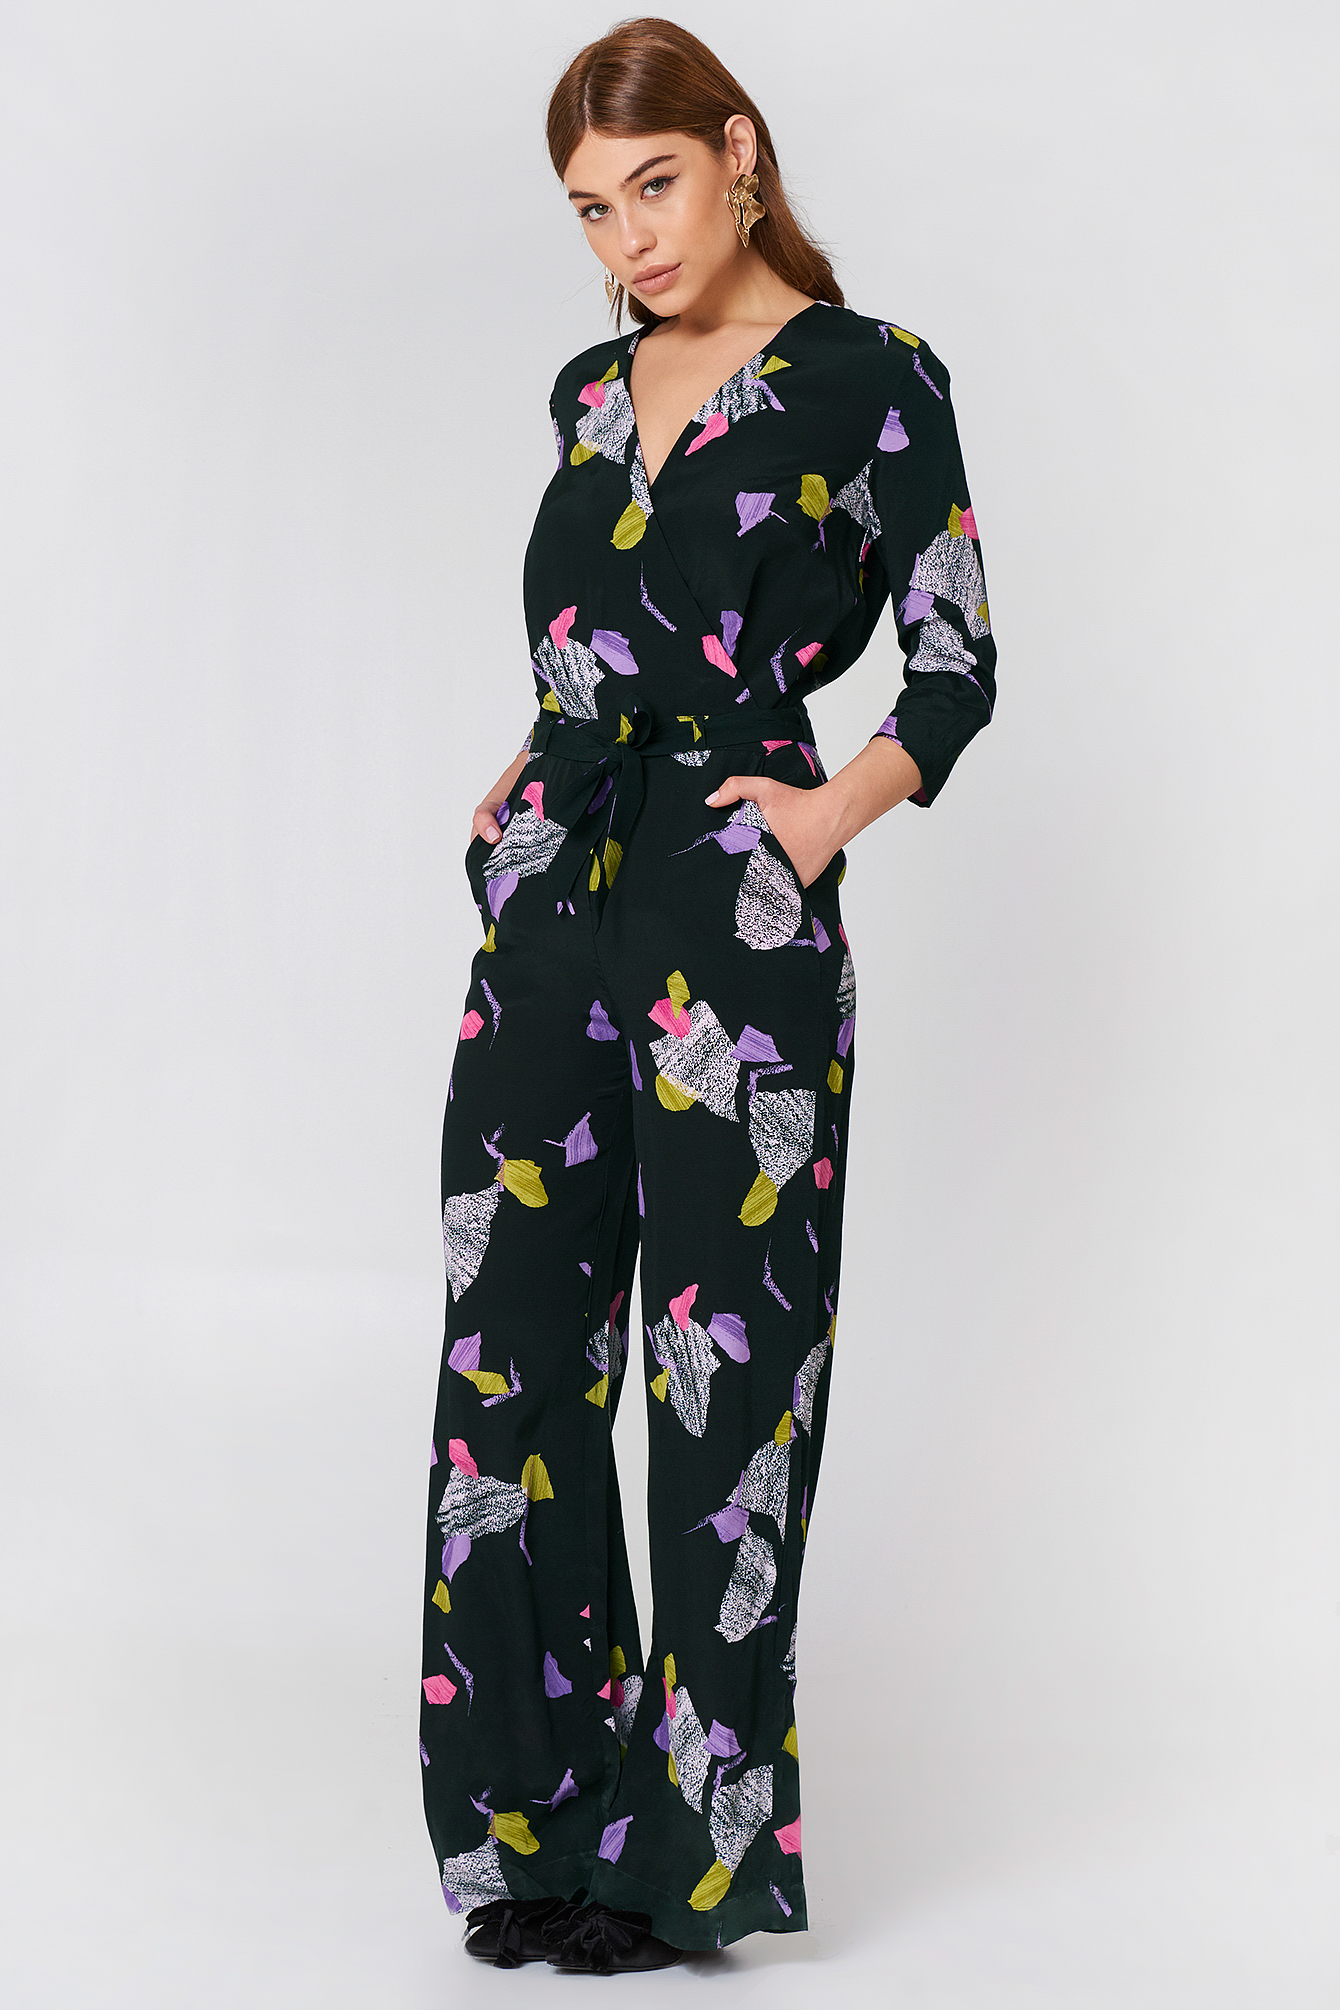 Clearance For Nice Online Store Womens Rikka Jumpsuit Mbym With Credit Card 7dpyG